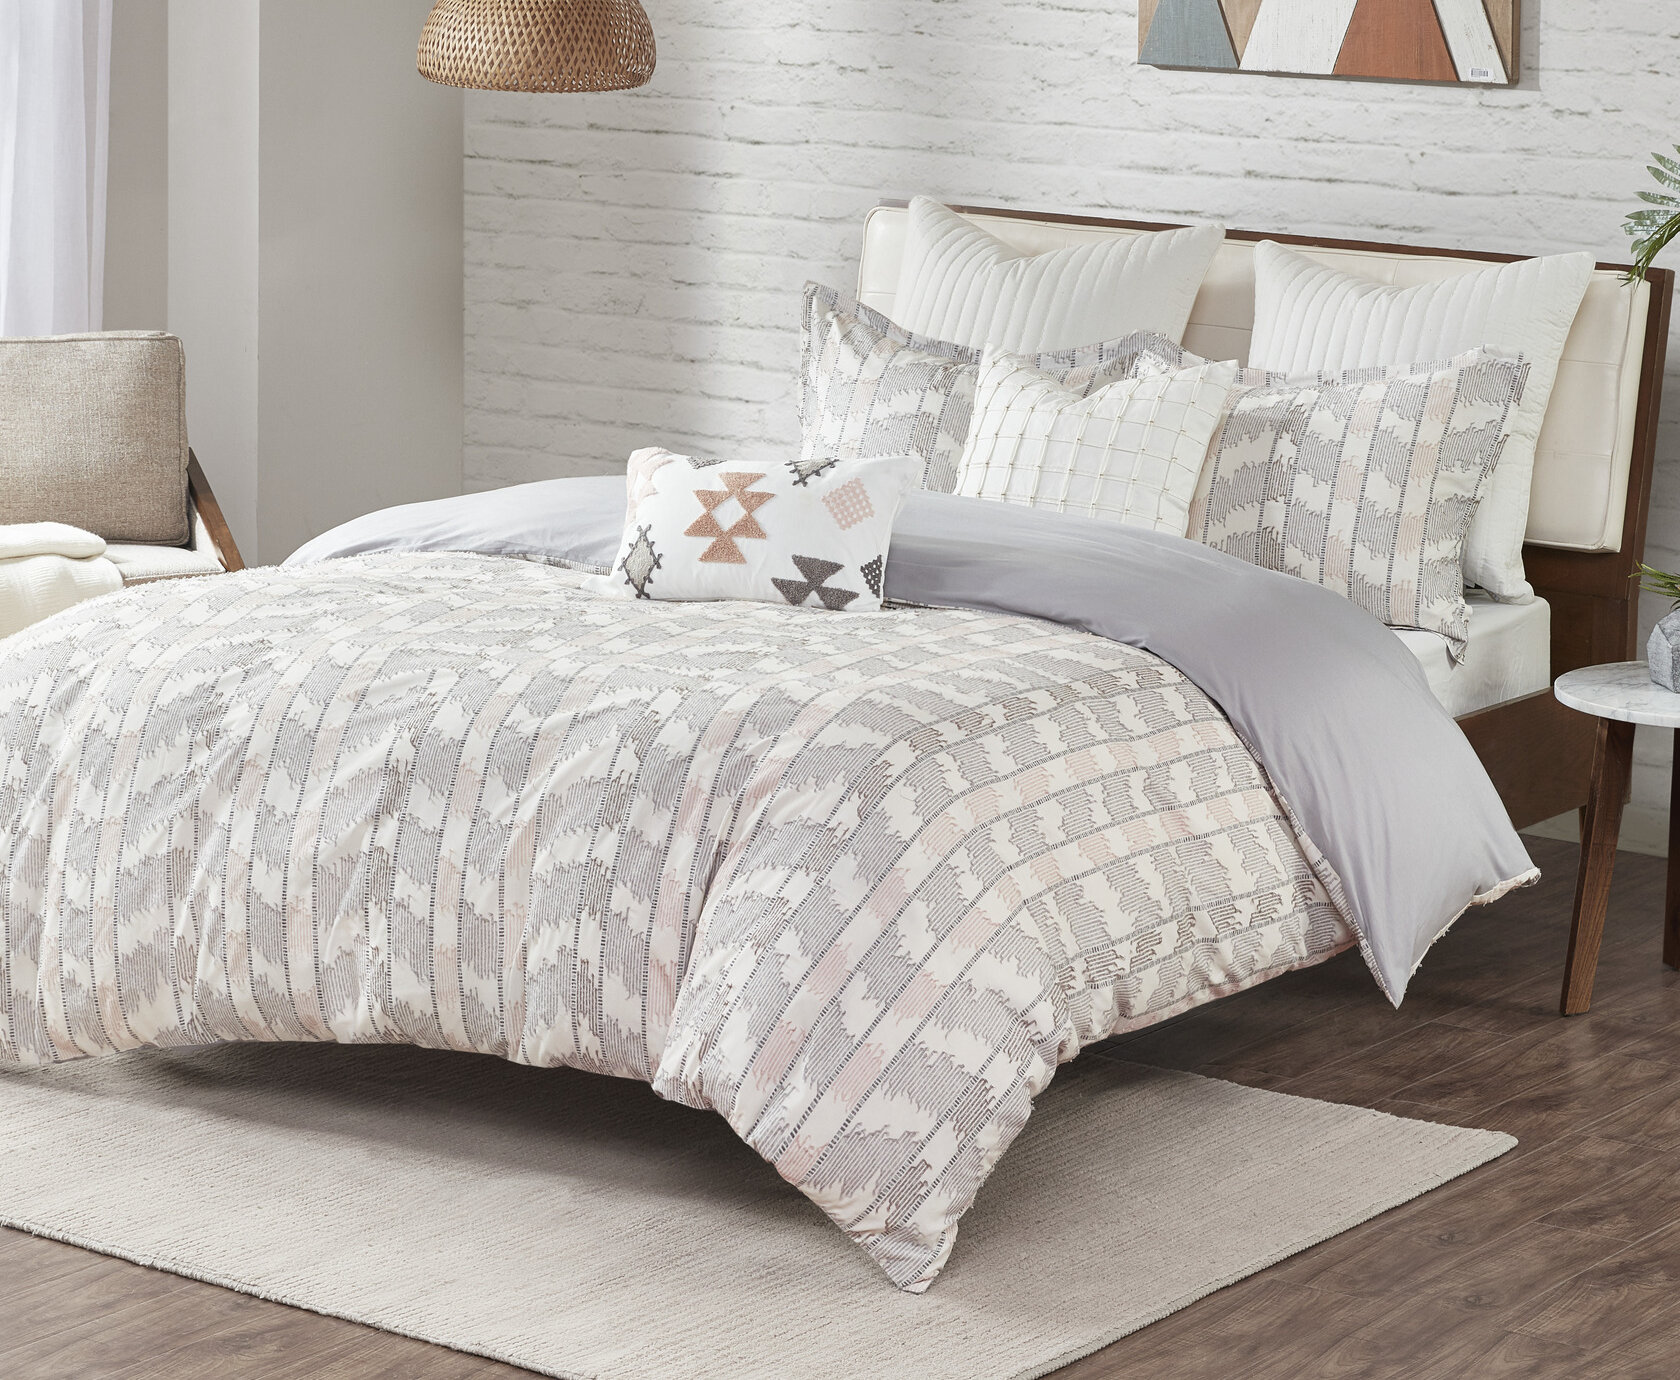 Modern Rustic White Comforters Sets You Ll Love In 2021 Wayfair